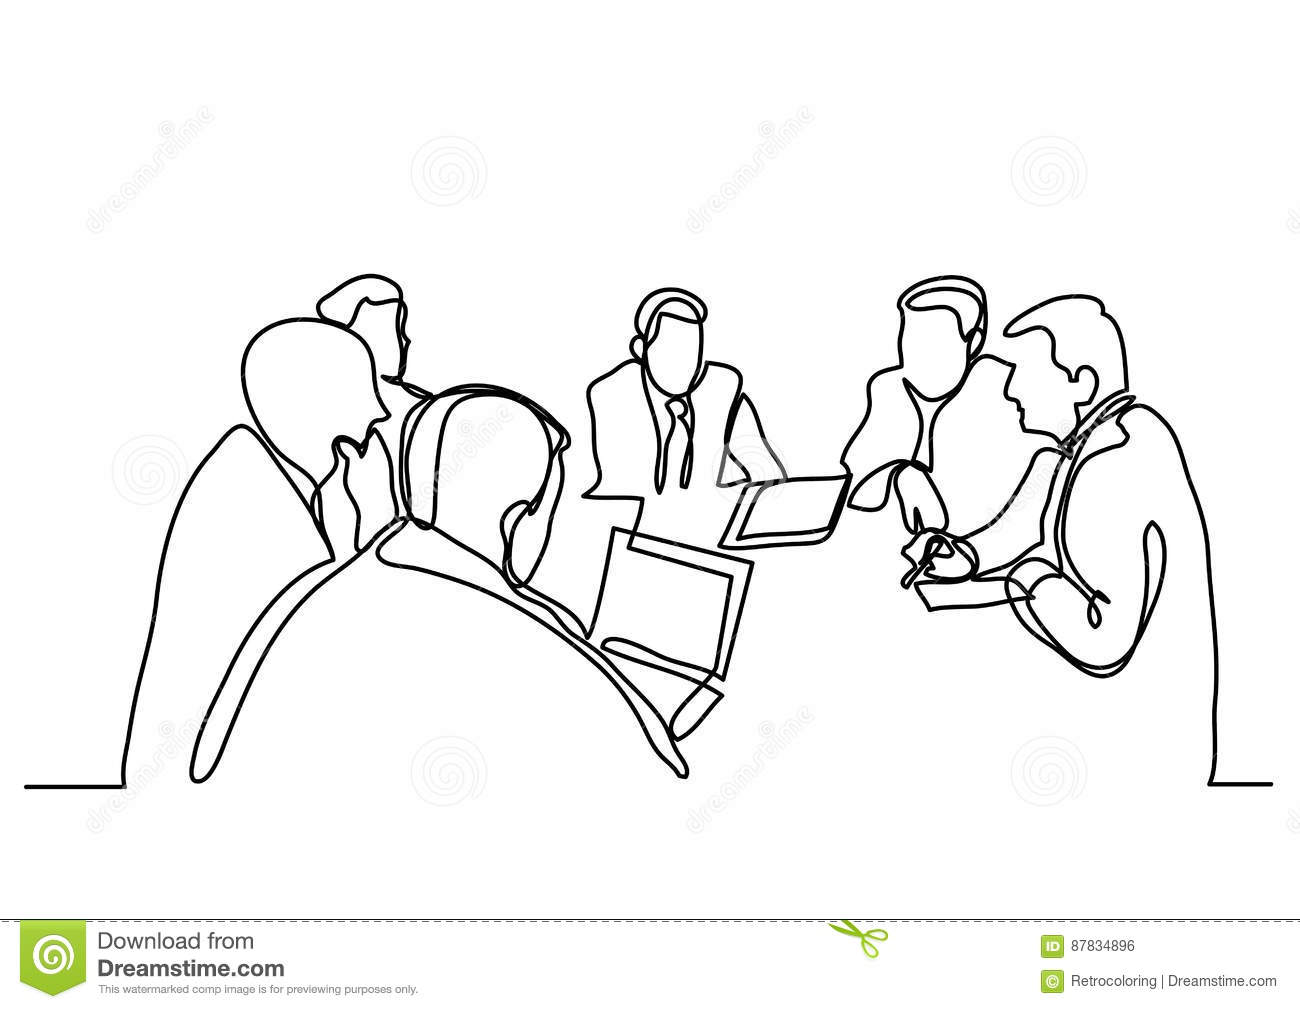 Continuous line drawing of business meeting